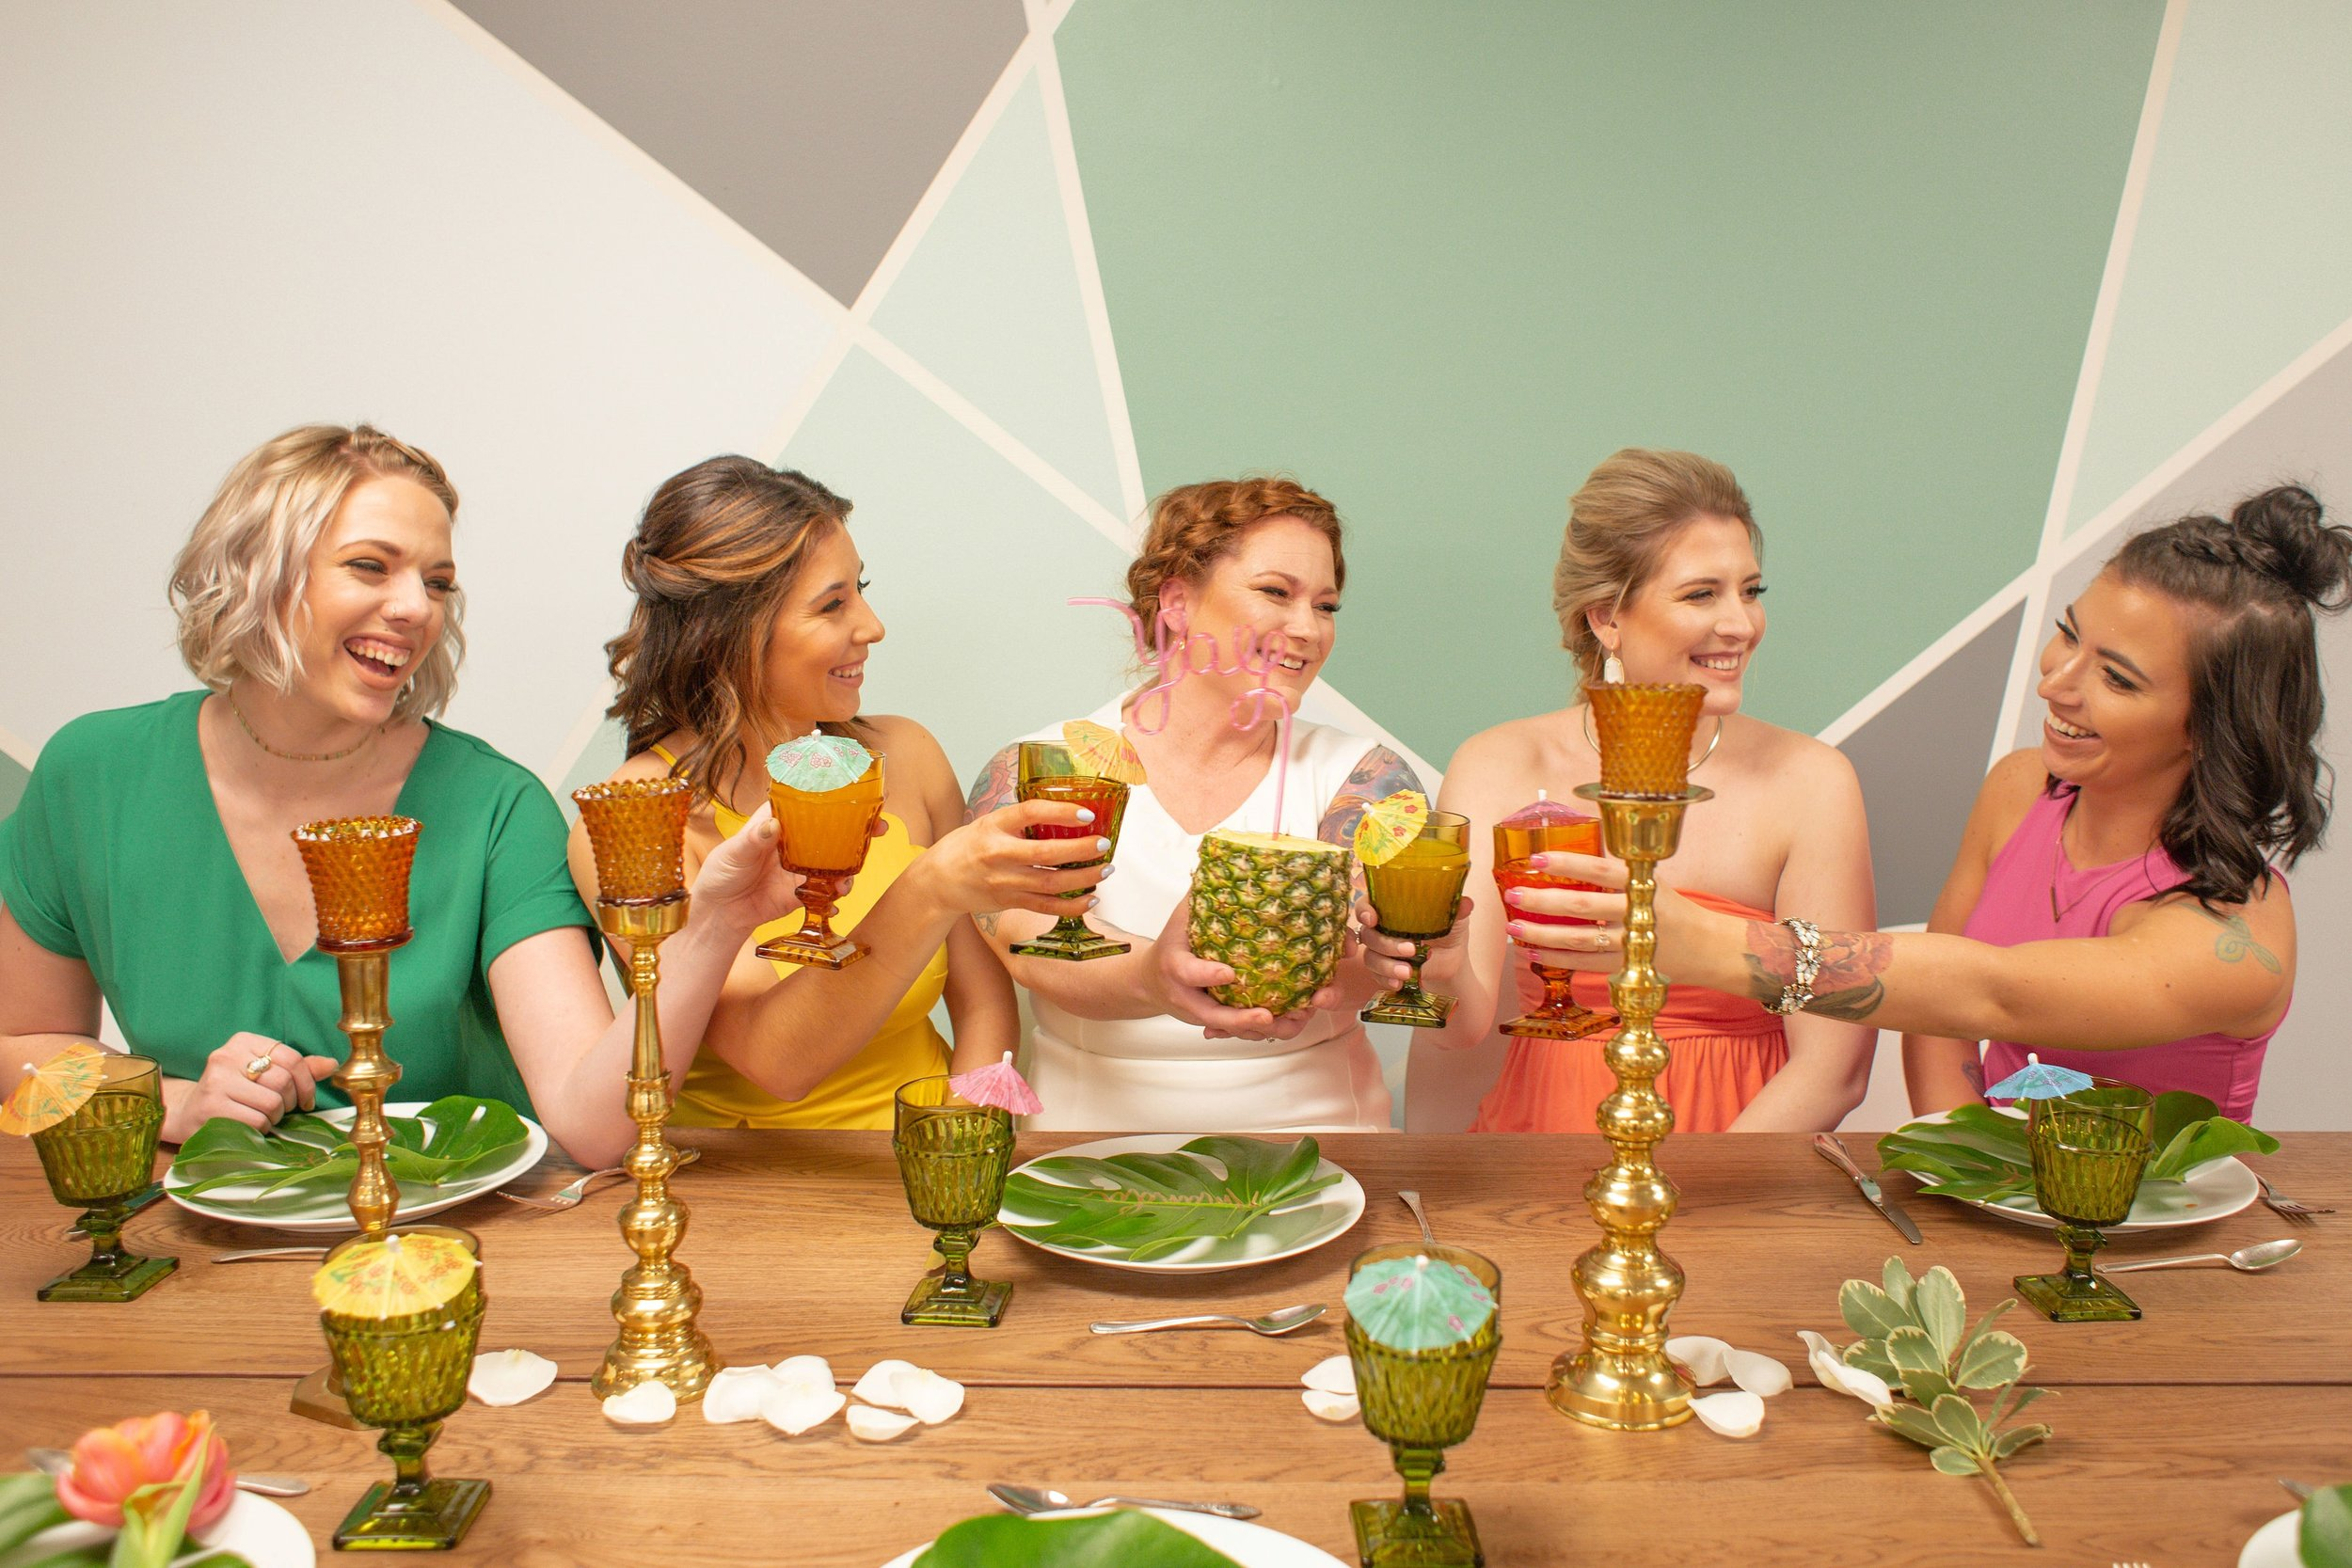 Bridal Shower Venue Space Madison WI - Bring your own food & alcohol - No Restrictions!